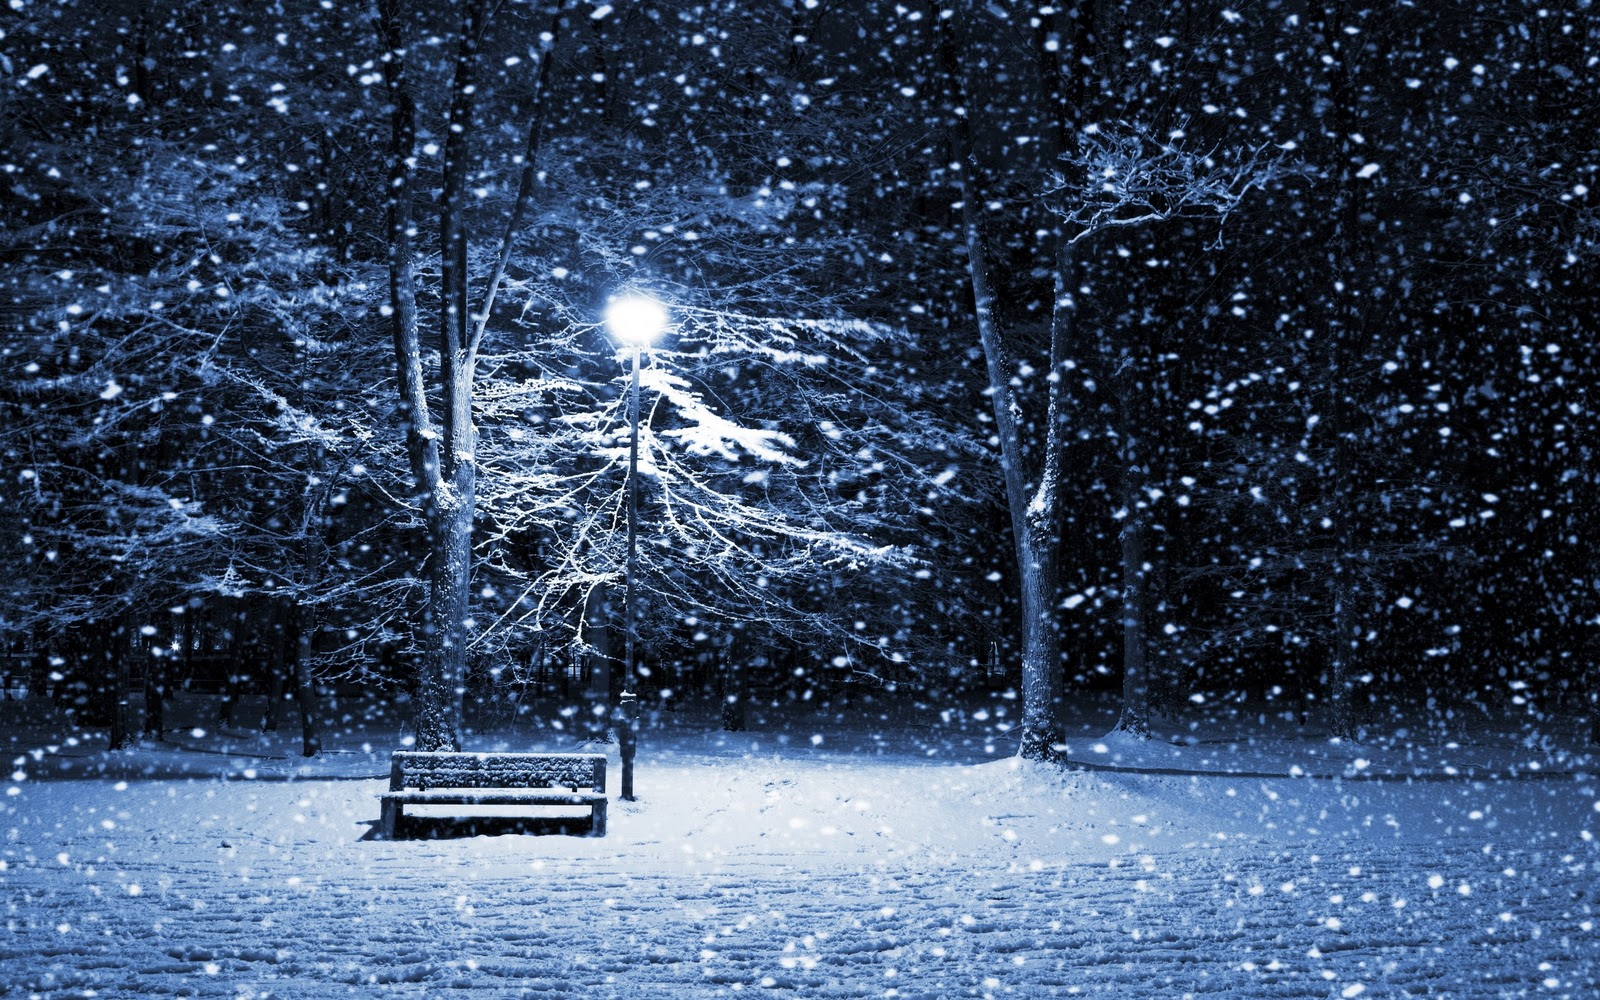 http://3.bp.blogspot.com/_14grgzfQGYA/TPlYjJ3JWXI/AAAAAAAACas/2OZwqt1dTmY/s1600/53-quiet-winter-night-widescreen-wallpapers-2560x1600.jpeg